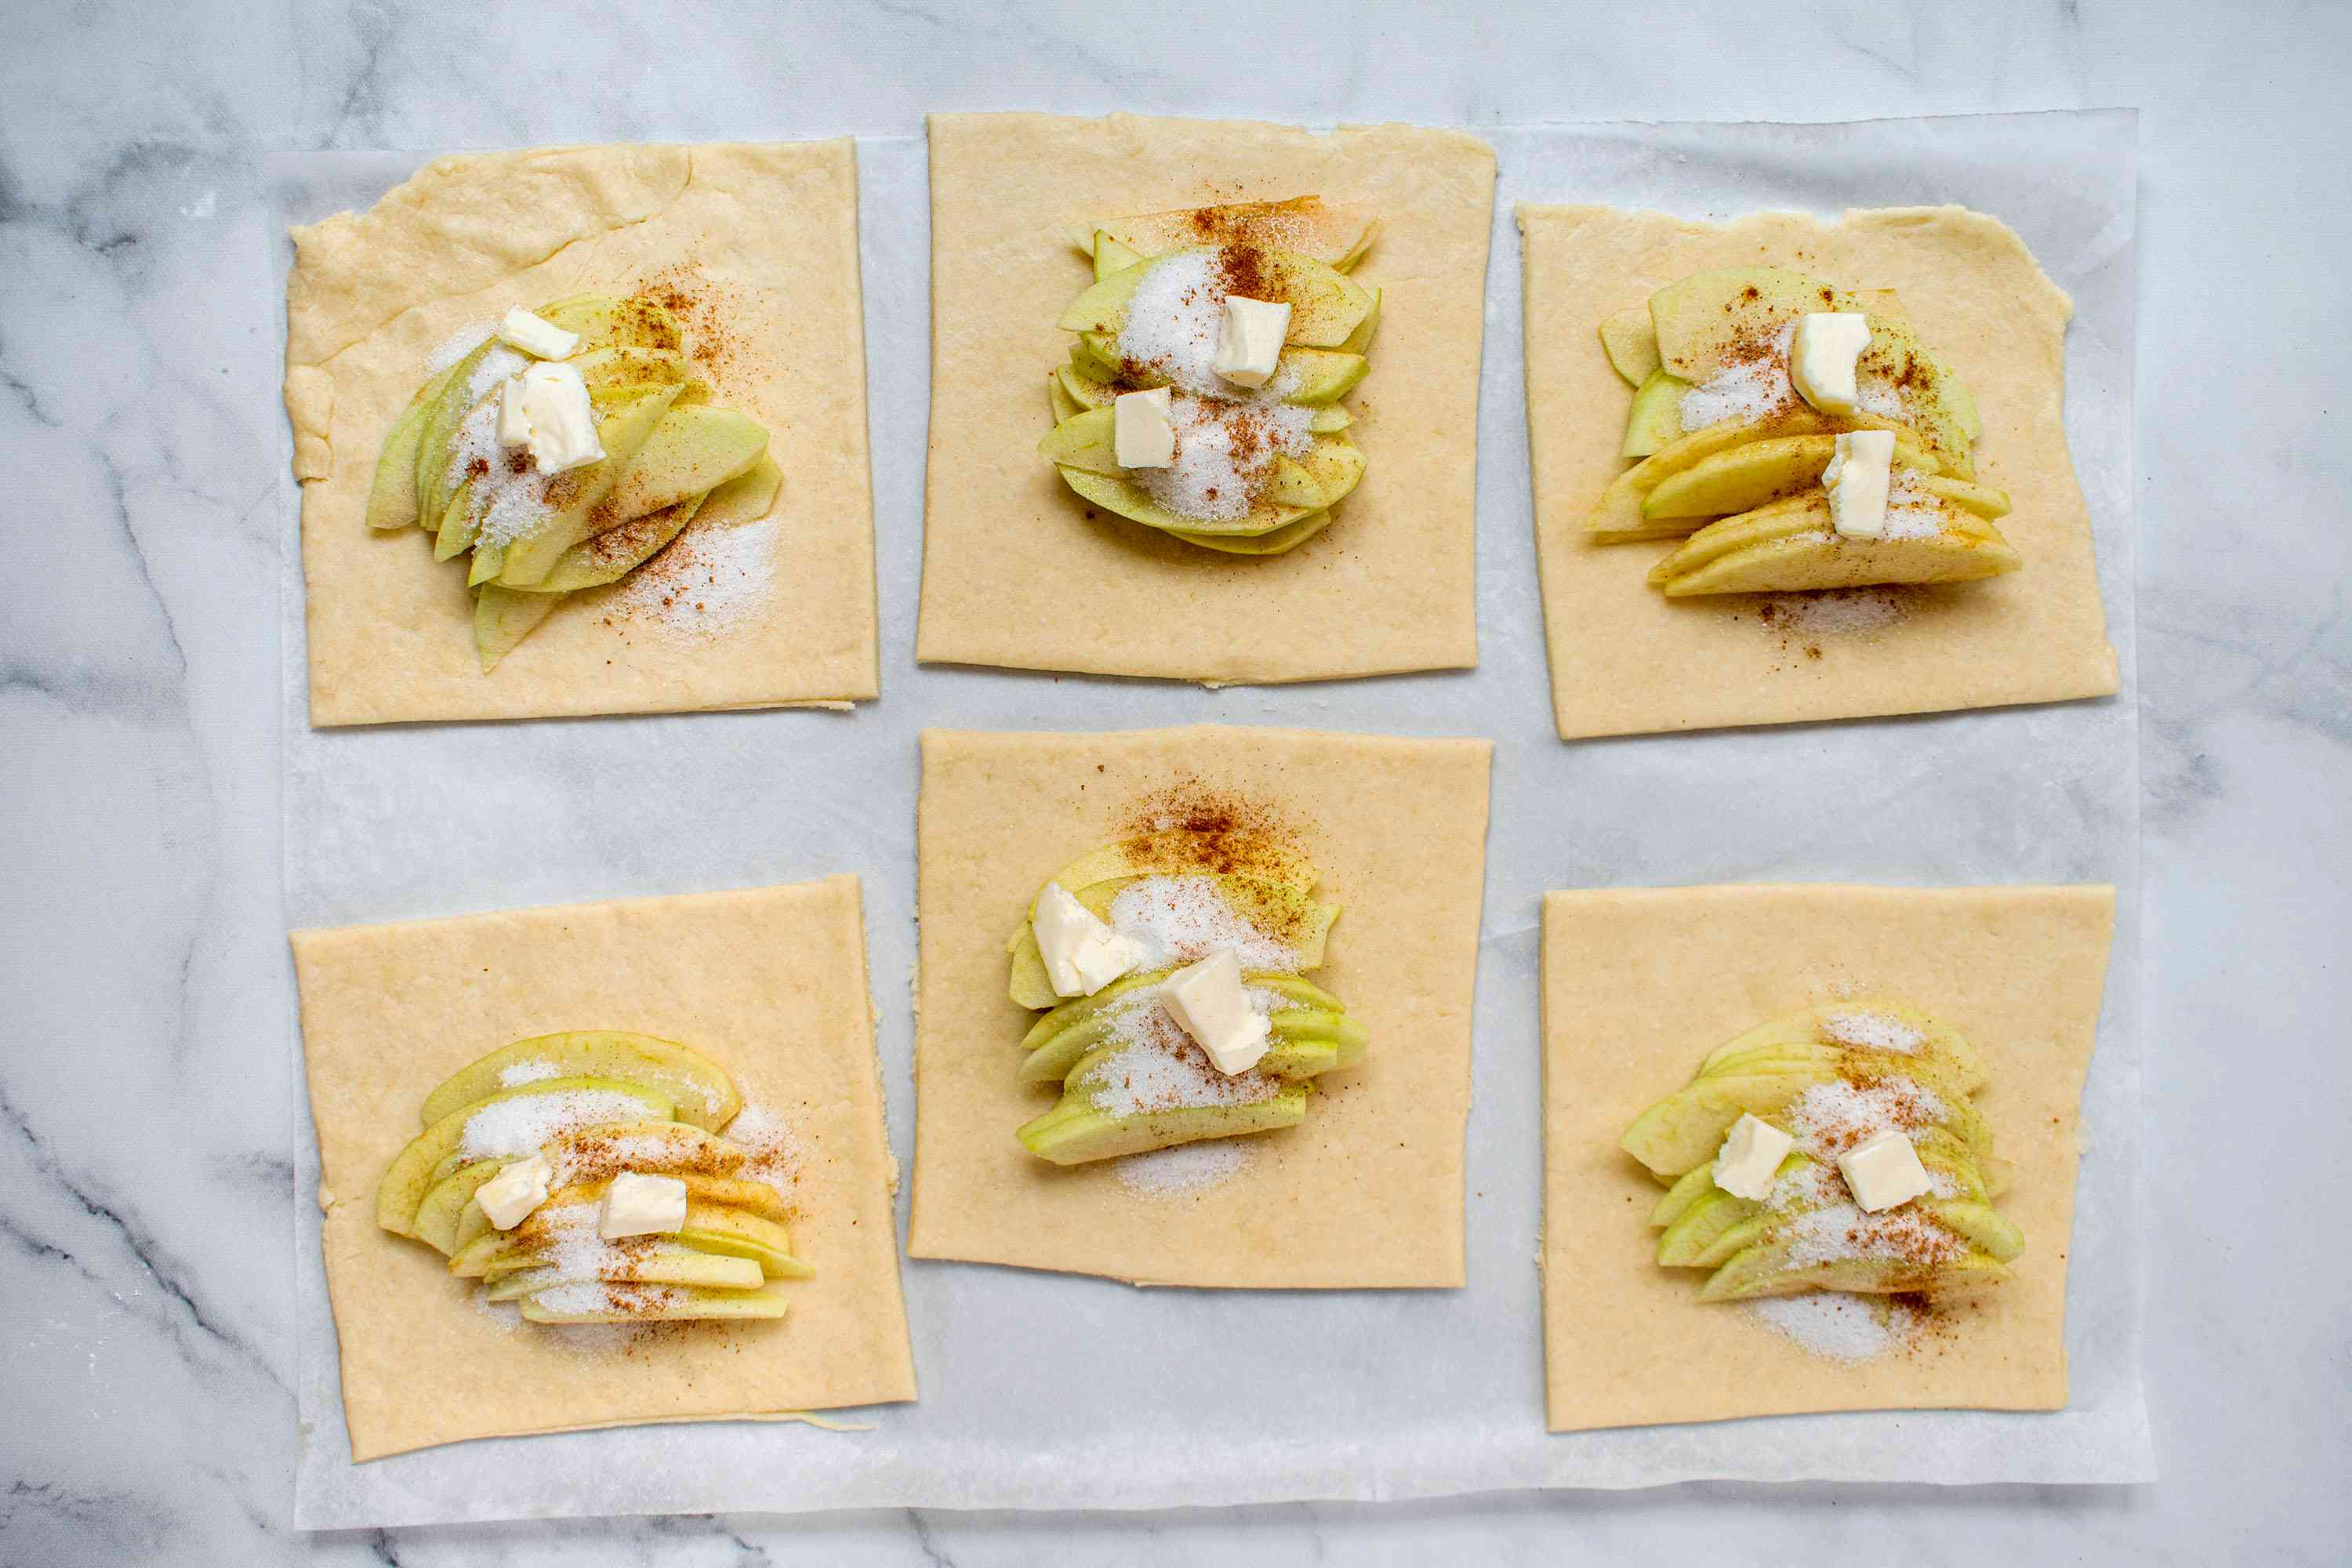 butter added on top of the apples, cinnamon and sugar on the dough squares